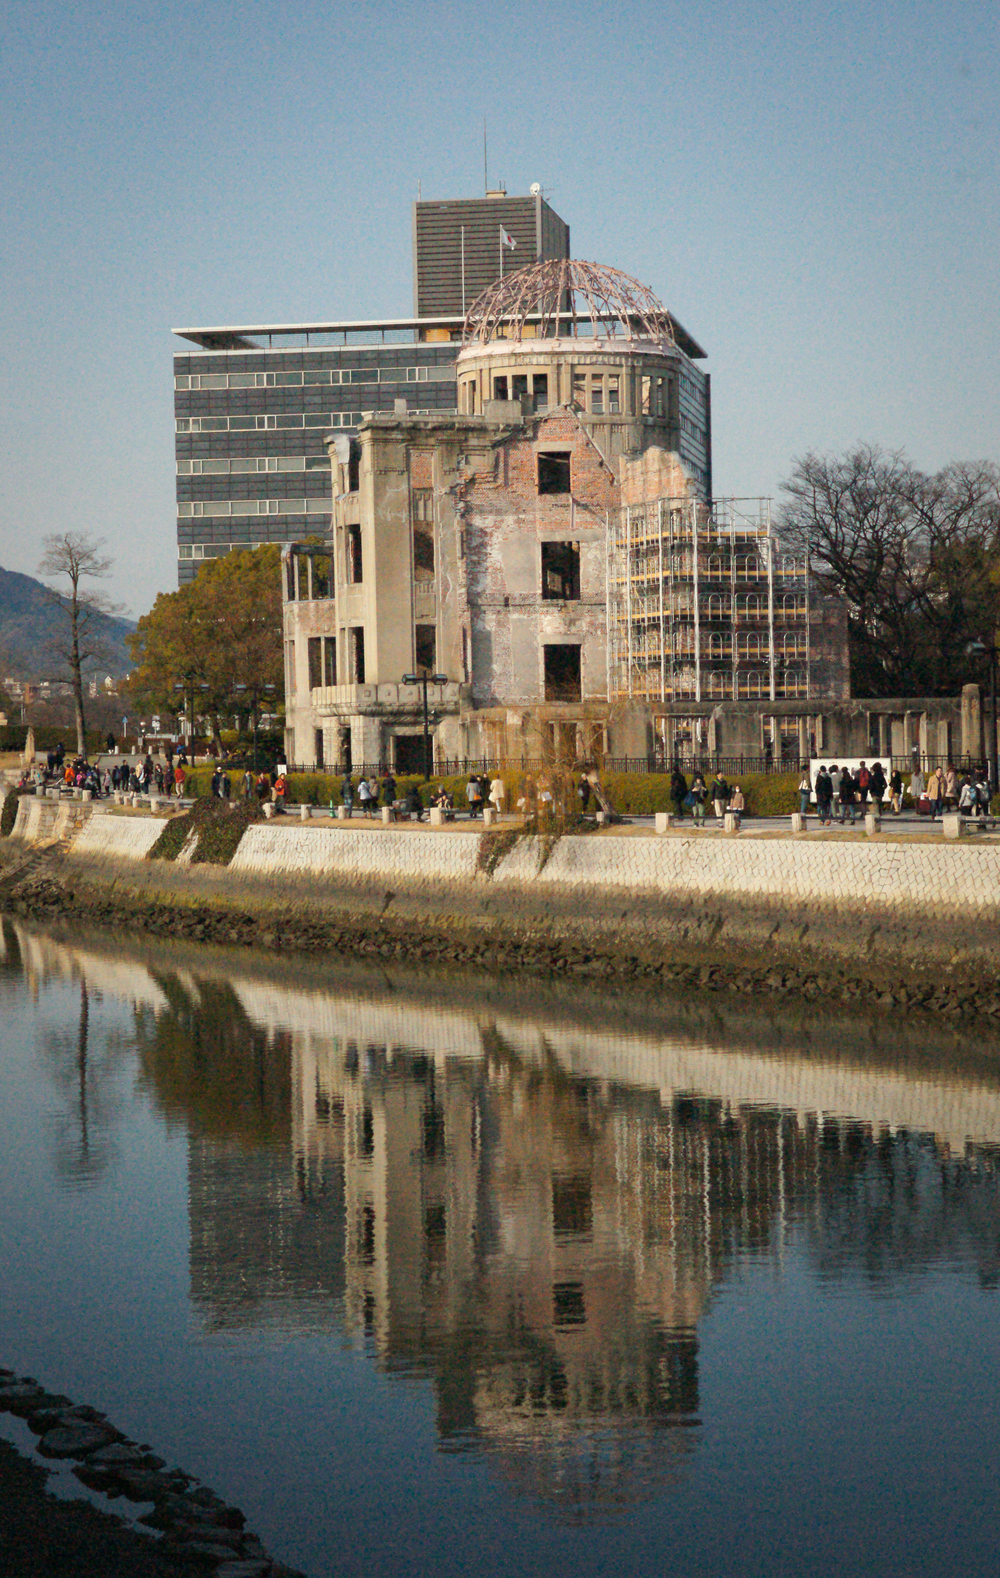 Atomic Dome from across the Motoyasu River